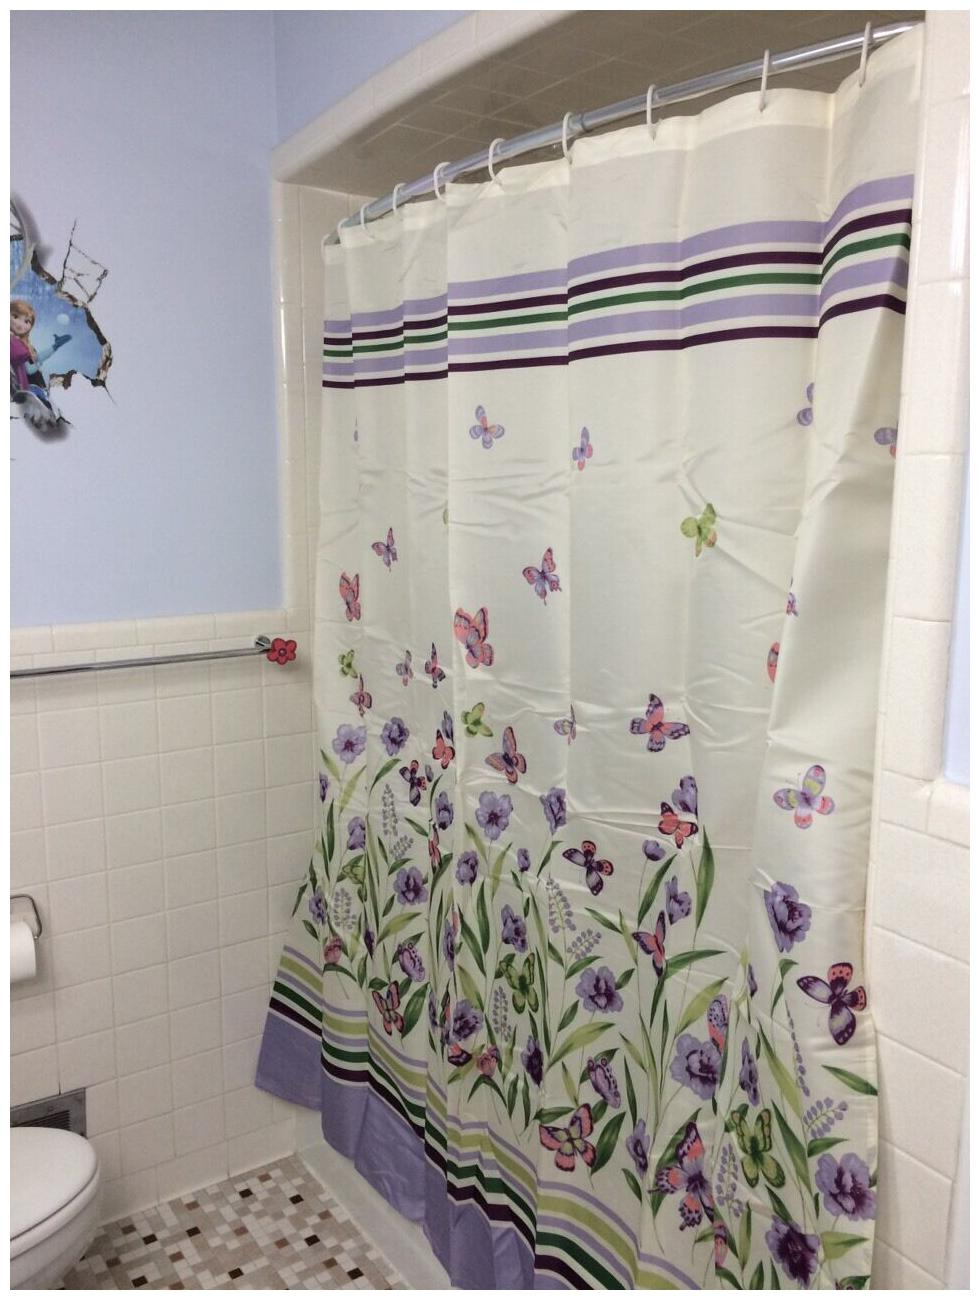 Butterfly Bathroom Decor Awesome butterfly Garden Pastel Shower Curtain Spring Purple Botanical Floral Bath Decor